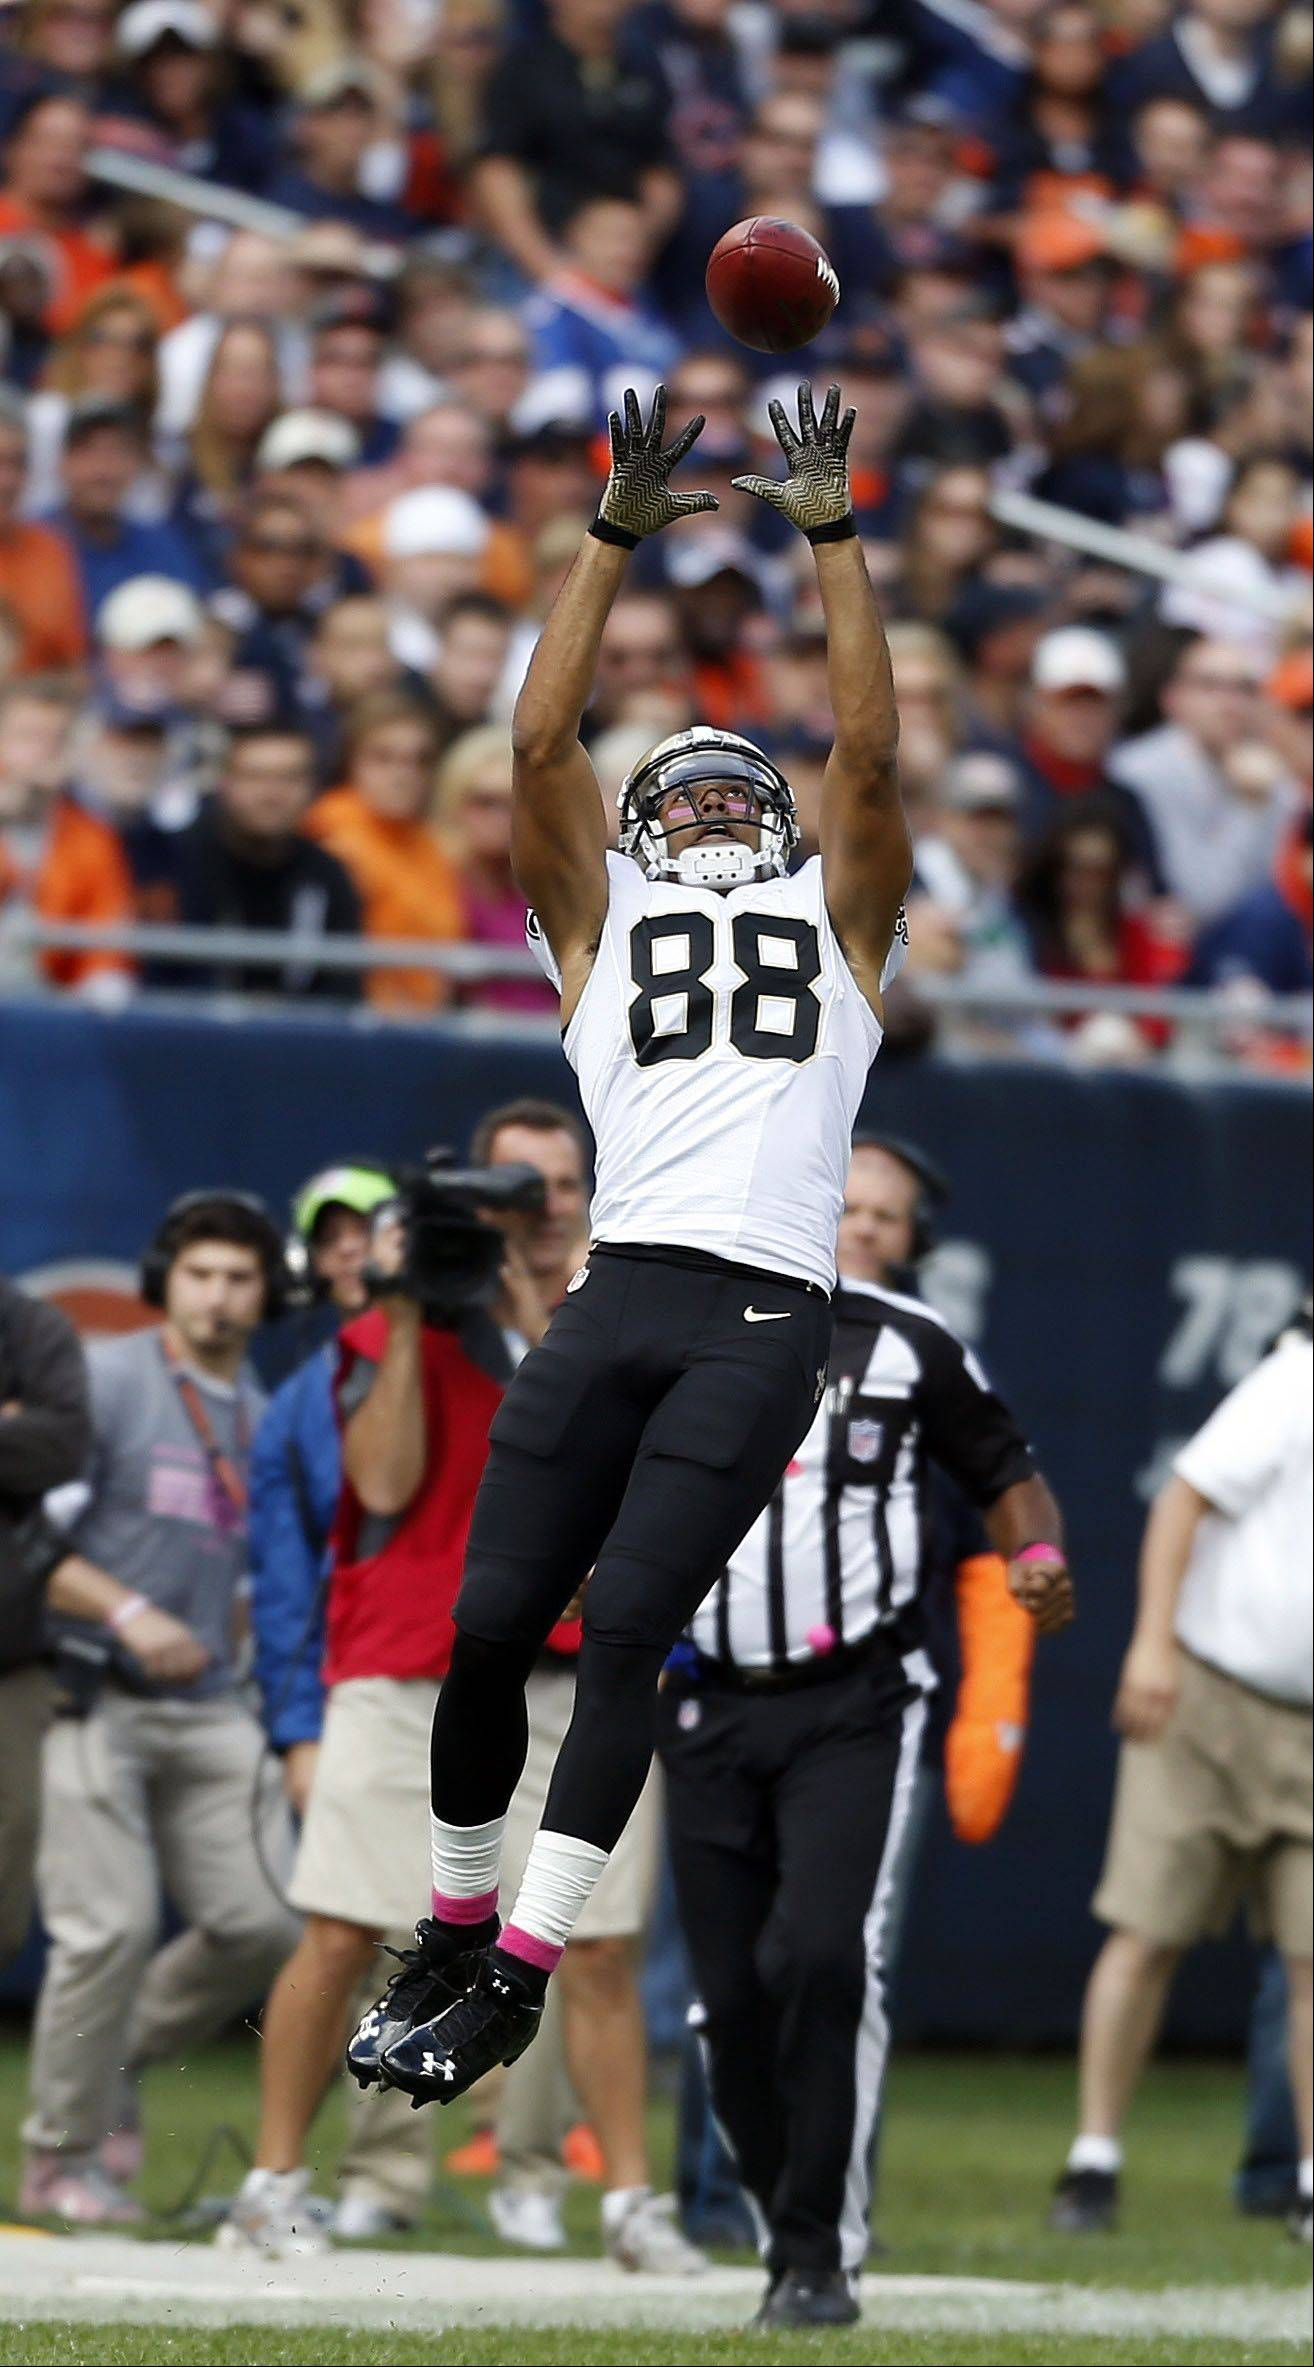 New Orleans Saints wide receiver Nick Toon goes up high for a catch.